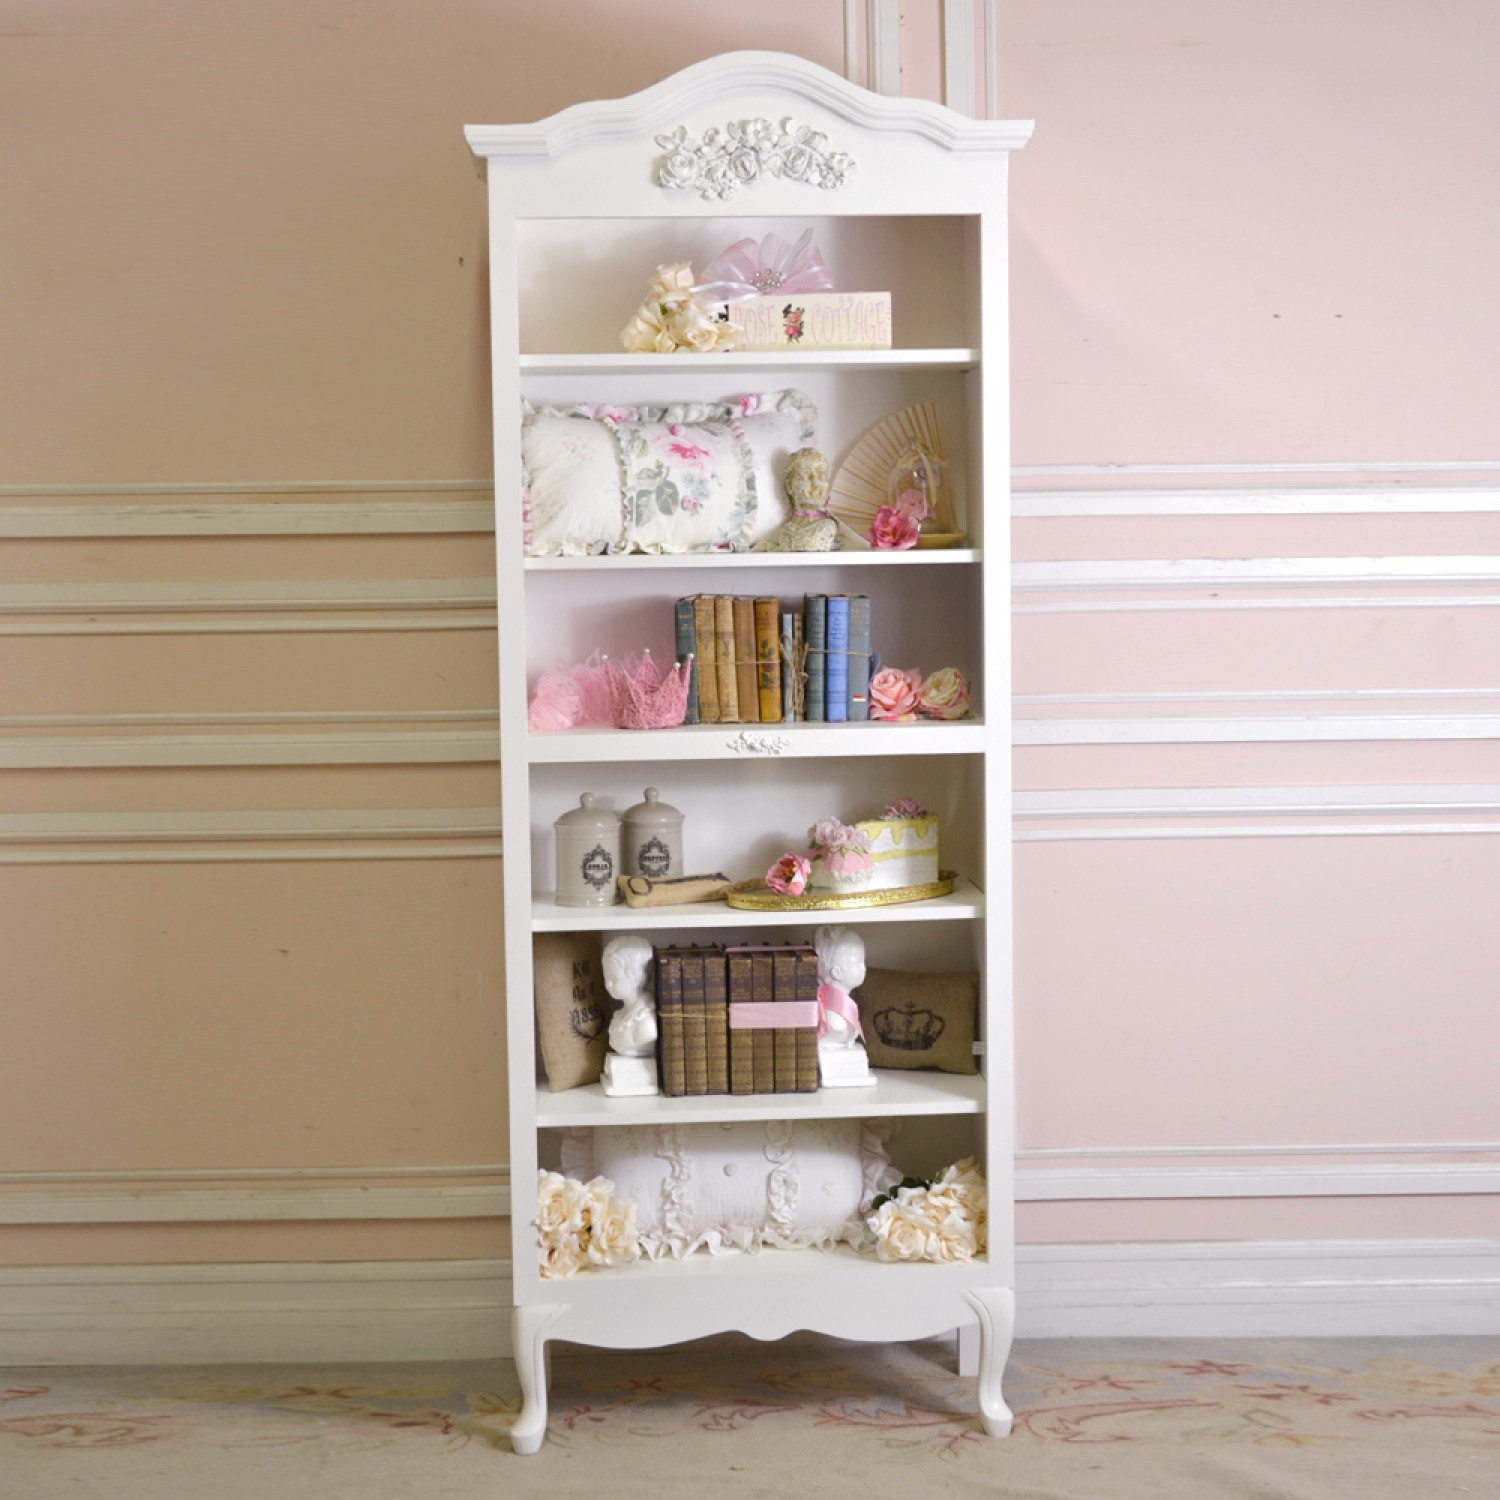 Best ideas about Shabby Chic Bookcase . Save or Pin Shabby Chic Bookshelf How to Vintage Appeal Now.